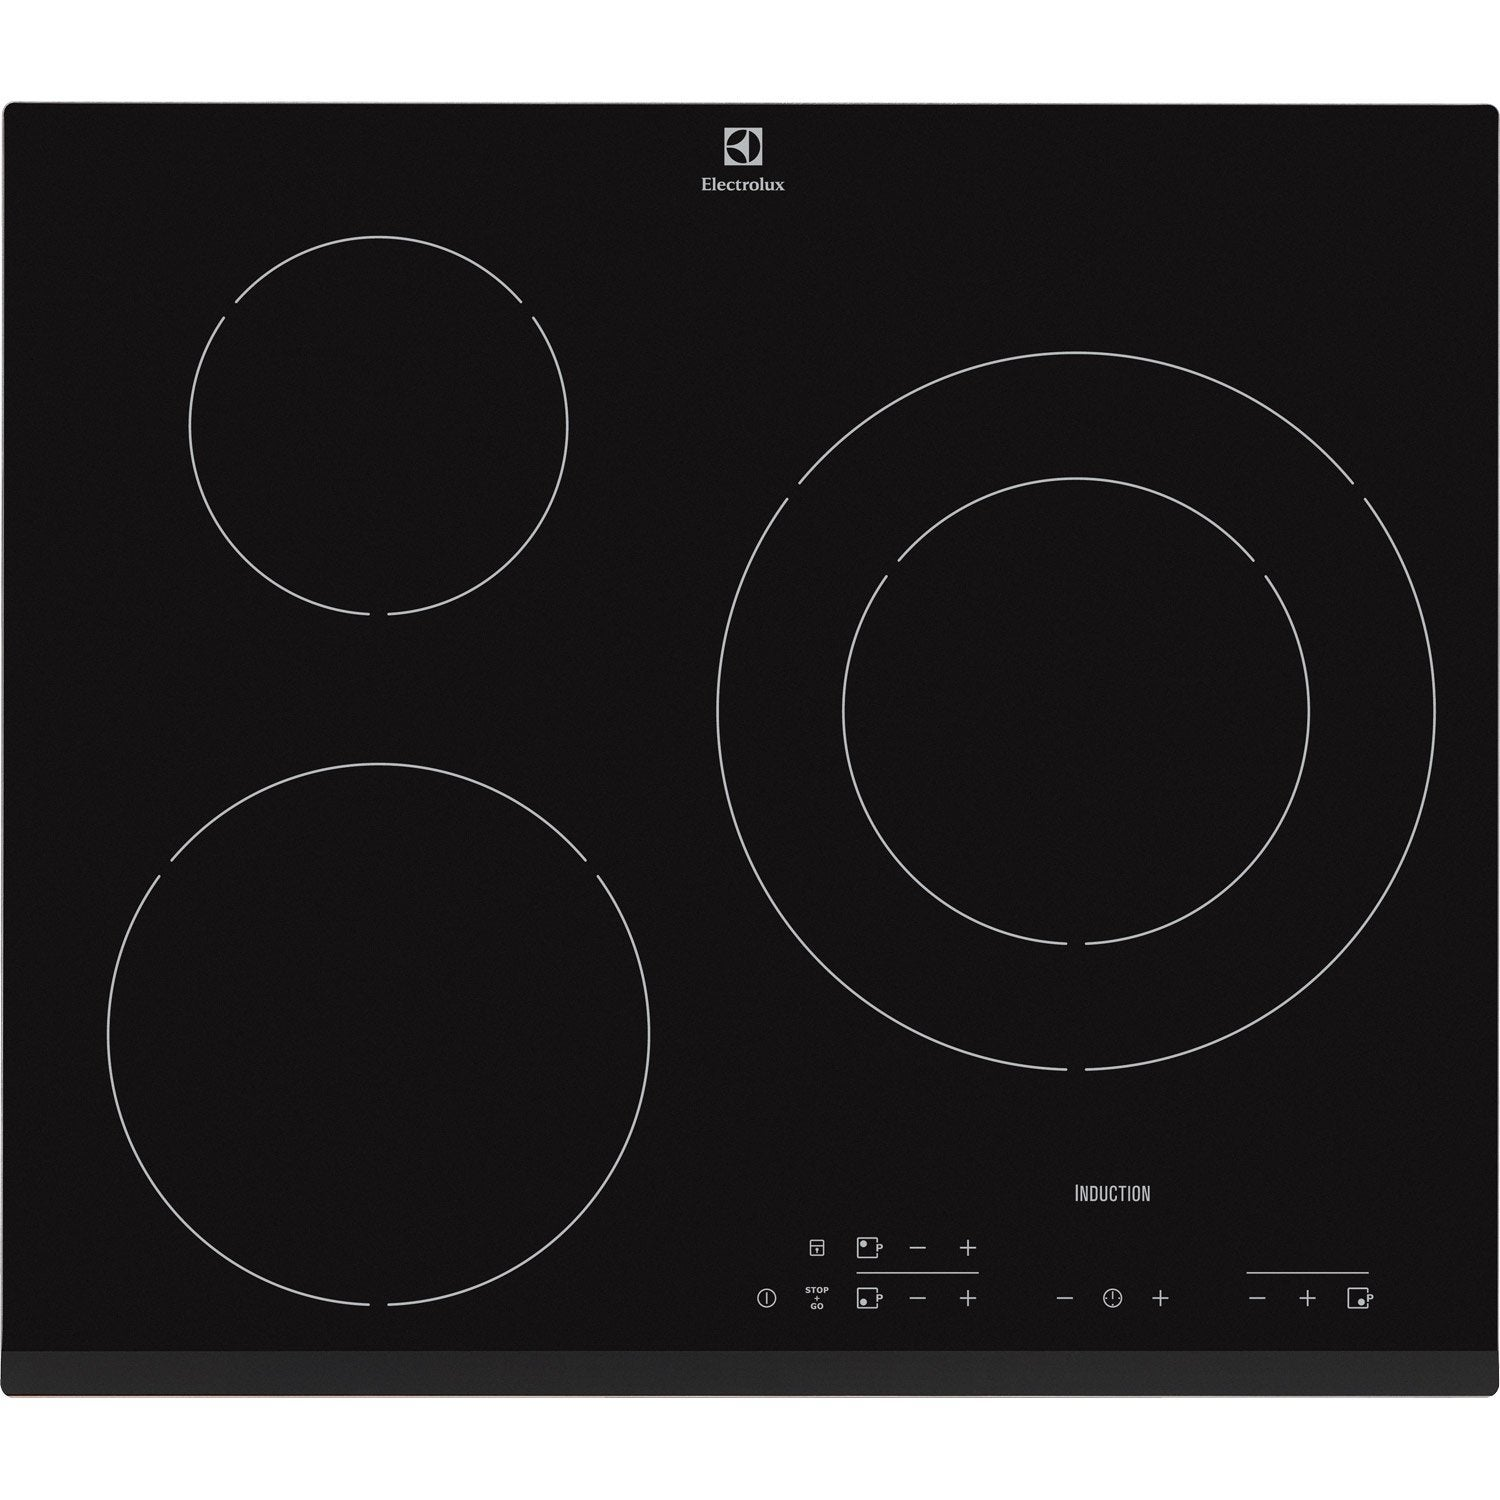 Plaque induction electrolux e6223hfk 3 foyers leroy merlin - Protege plaque induction leroy merlin ...